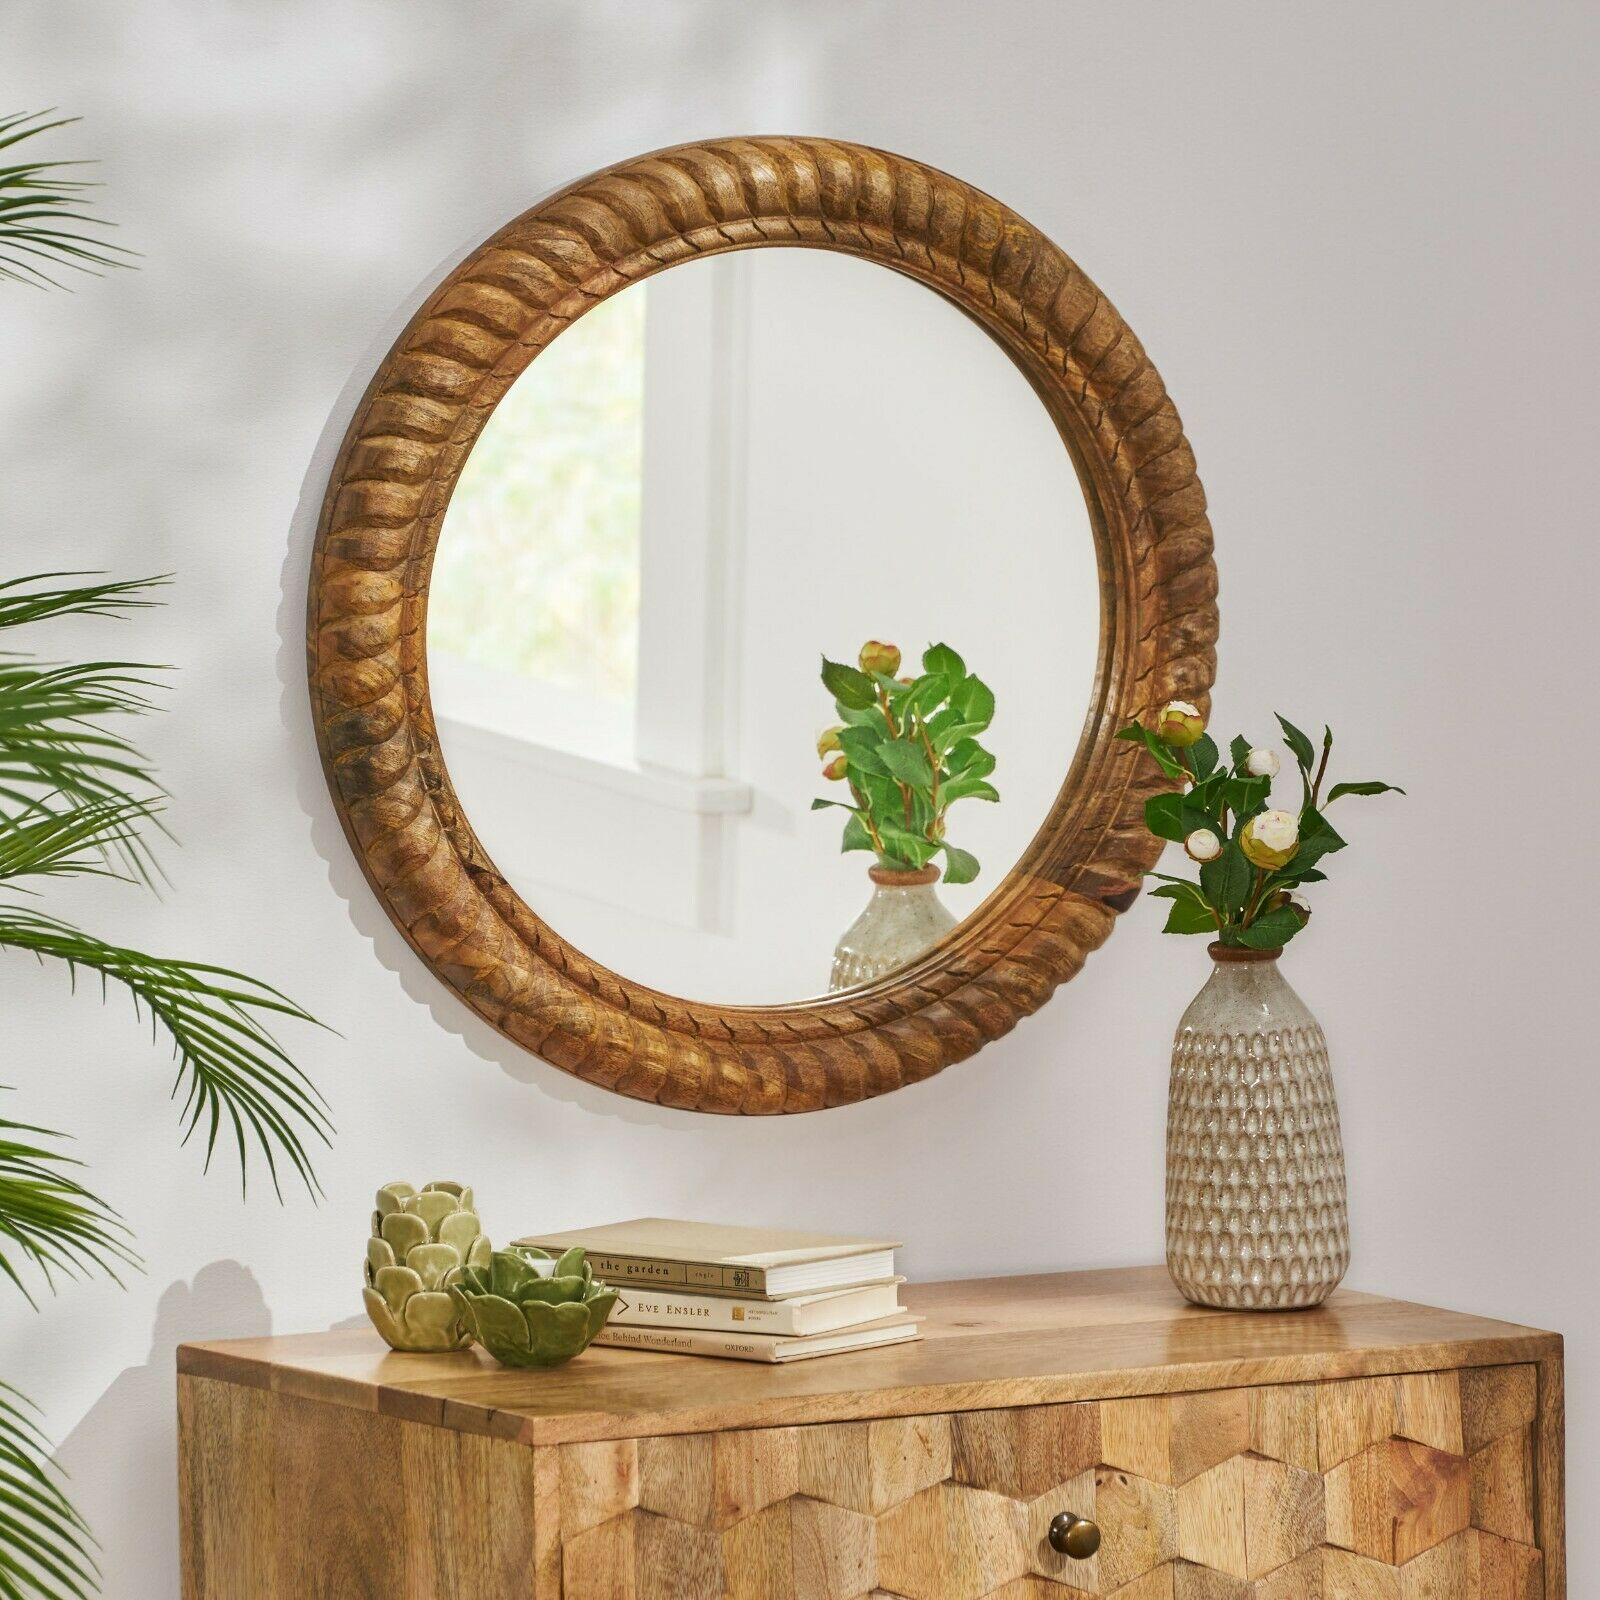 Scio Traditional Handcrafted Round Mango Wood Wall Mirror, Natural Home & Garden